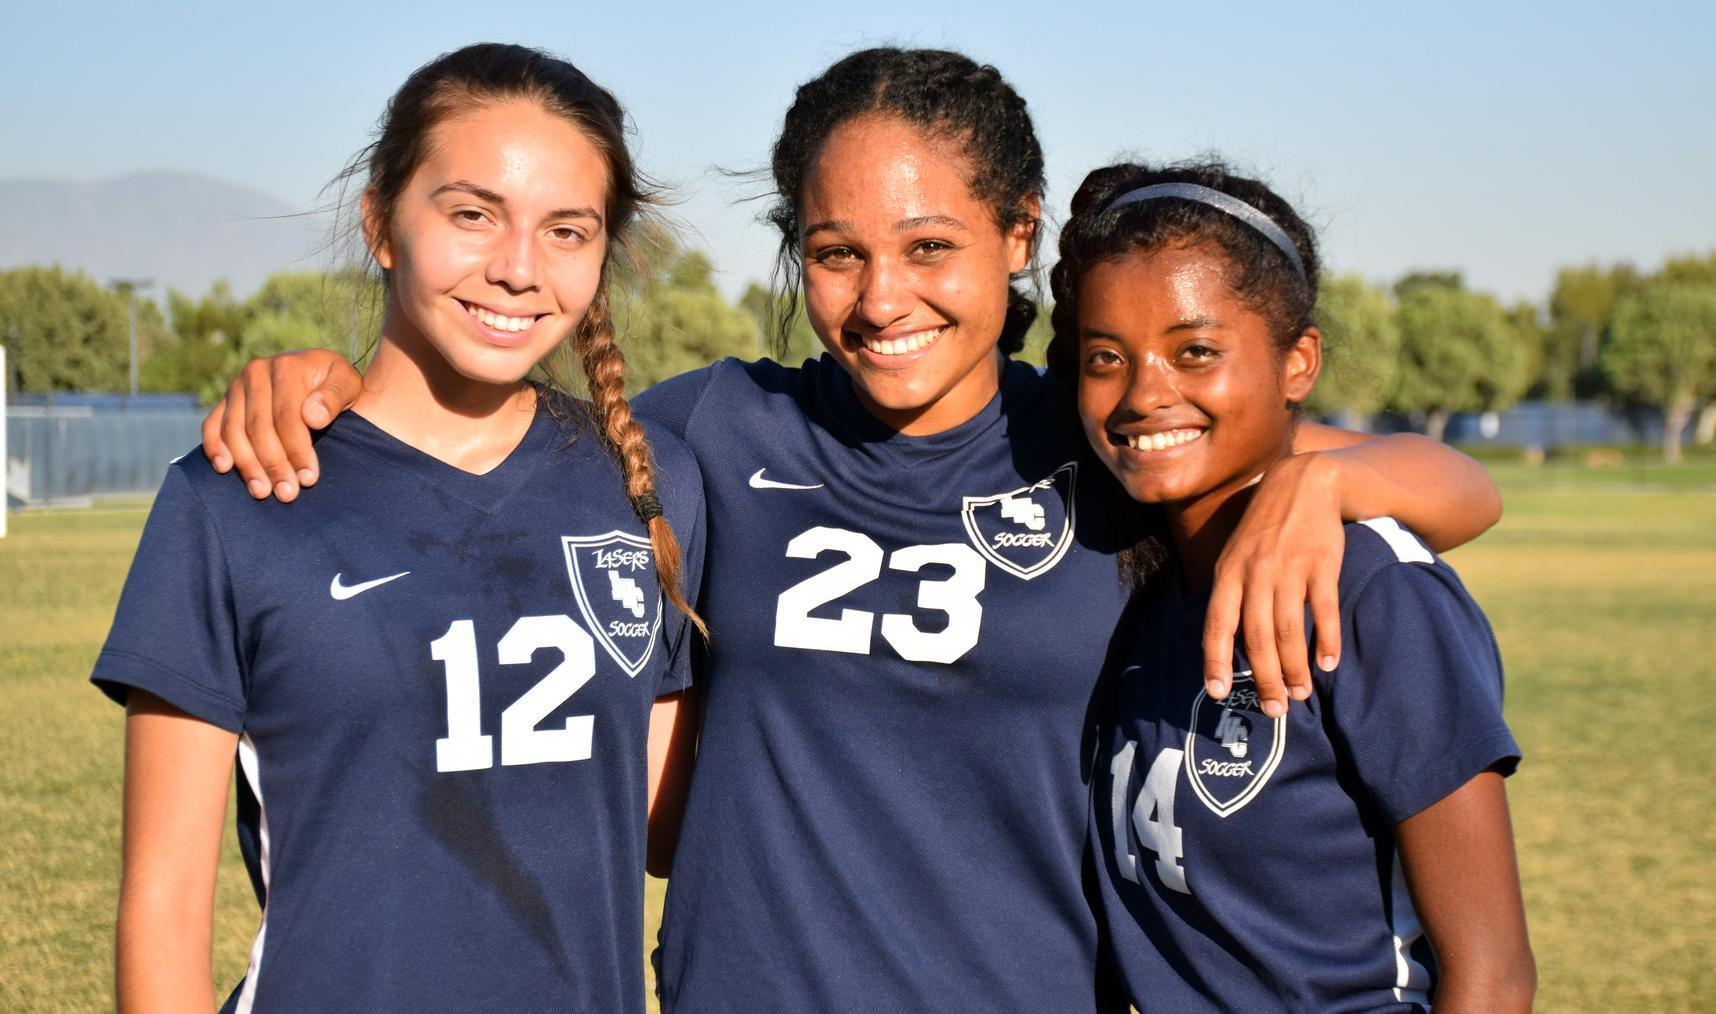 Women's soccer team wins second straight, shuts out Norco